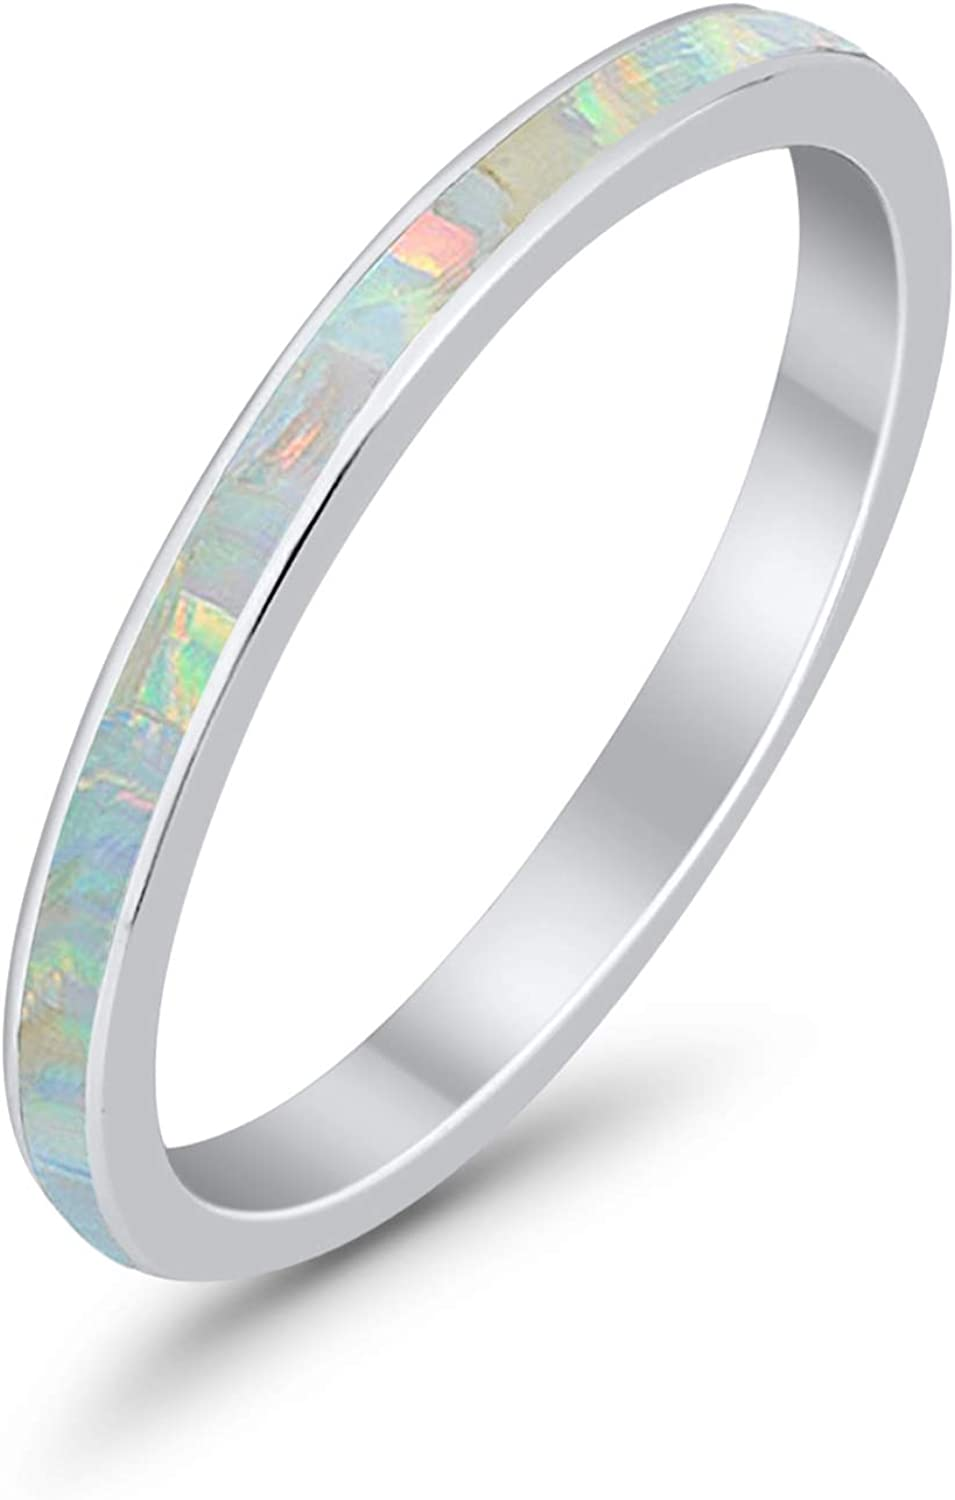 Blue Apple Co. 3mm Full Eternity Stackable Band Ring Lab Created Opal 925 Sterling Silver Choose Color